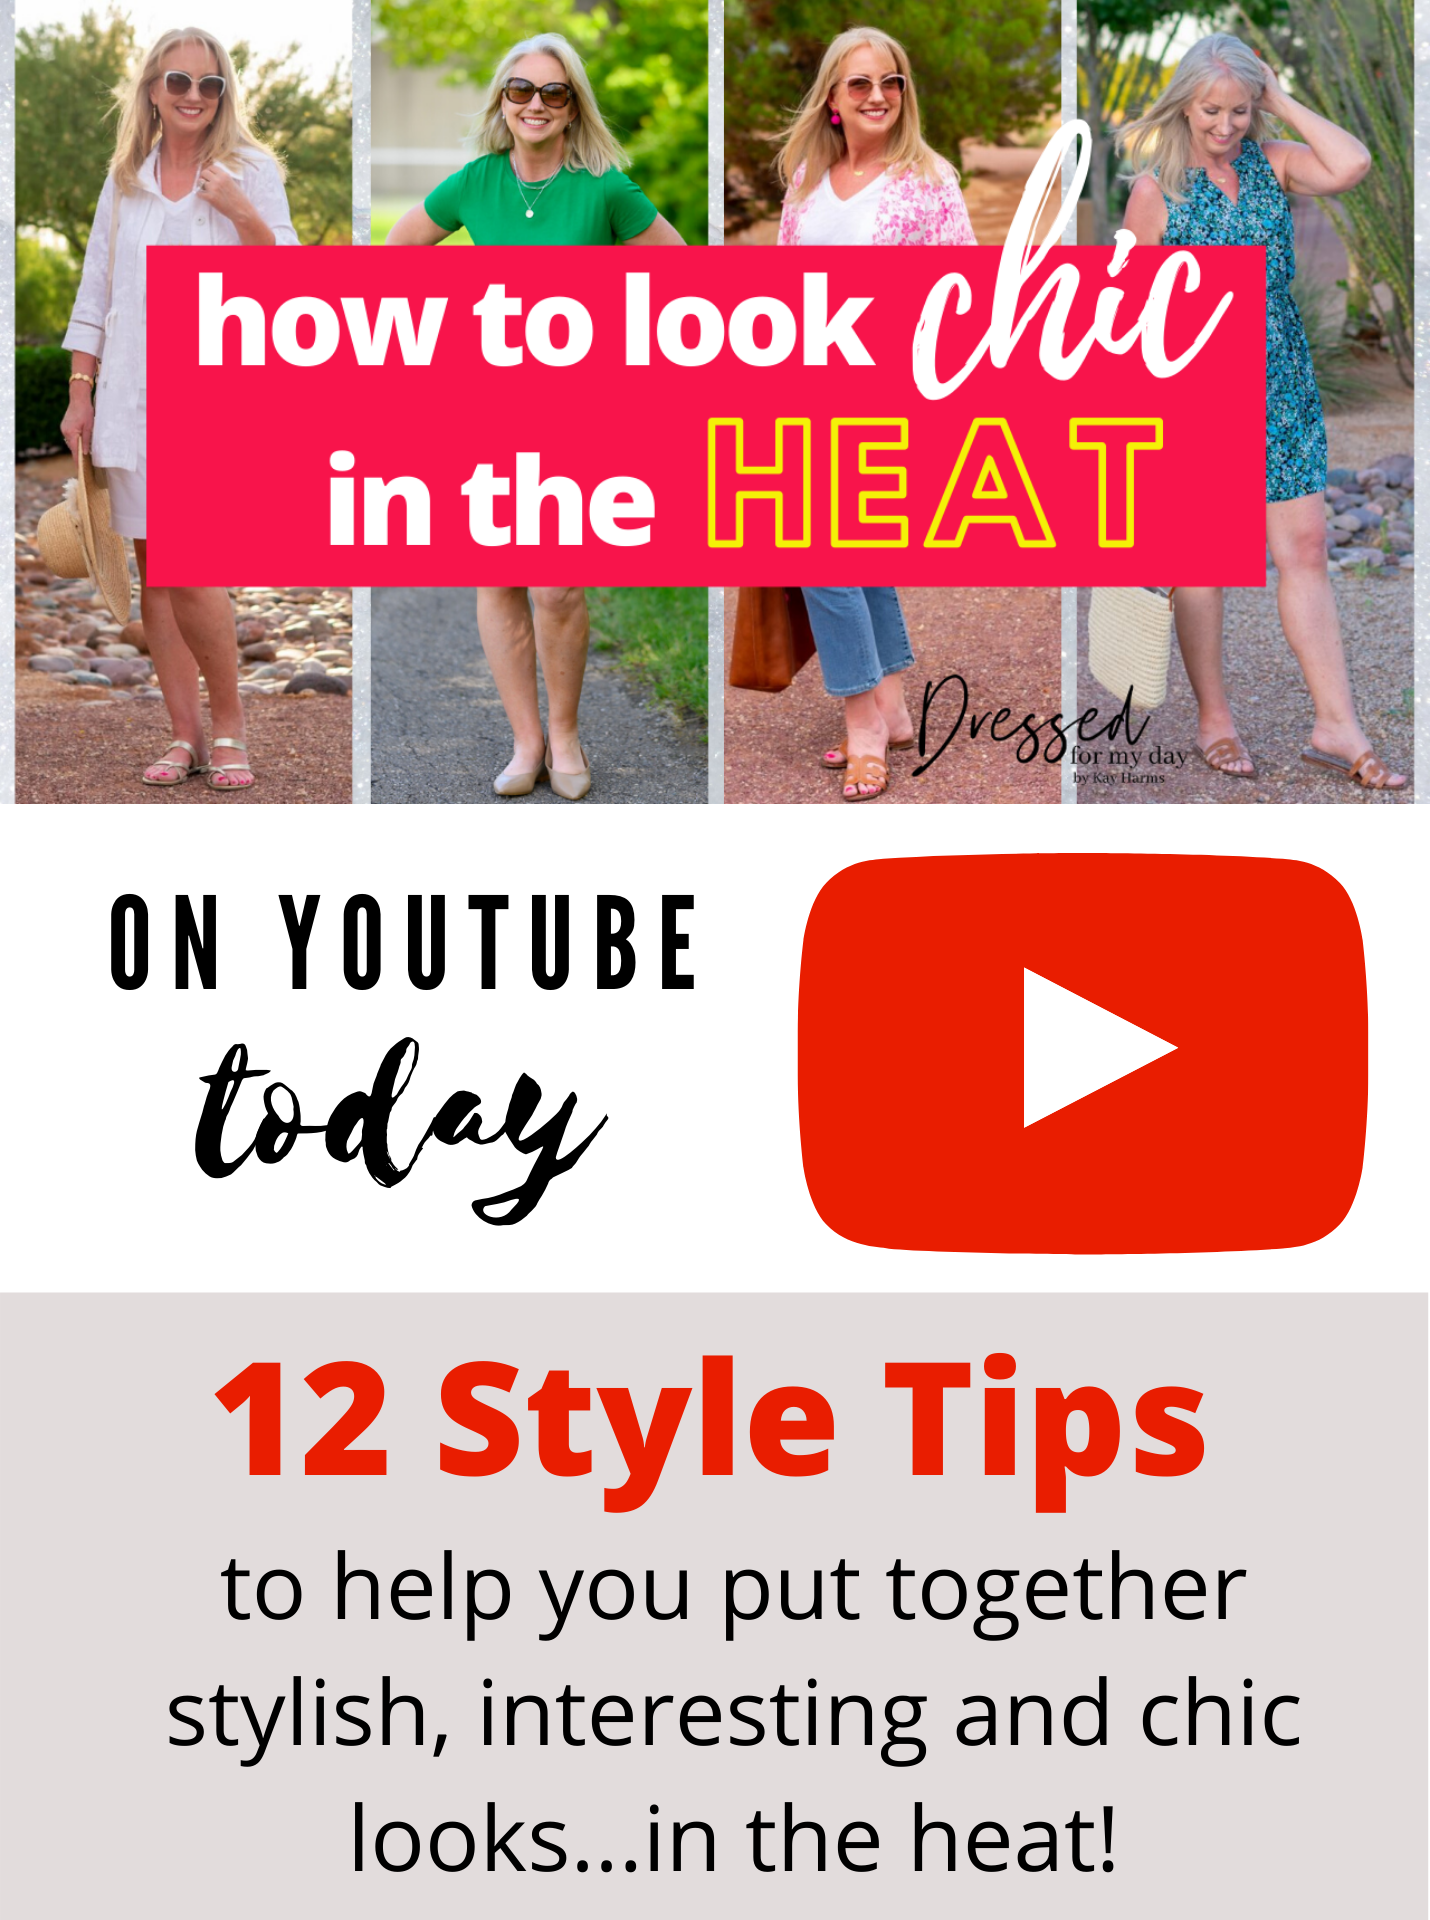 How to Look Chic in the Heat - Youtube video